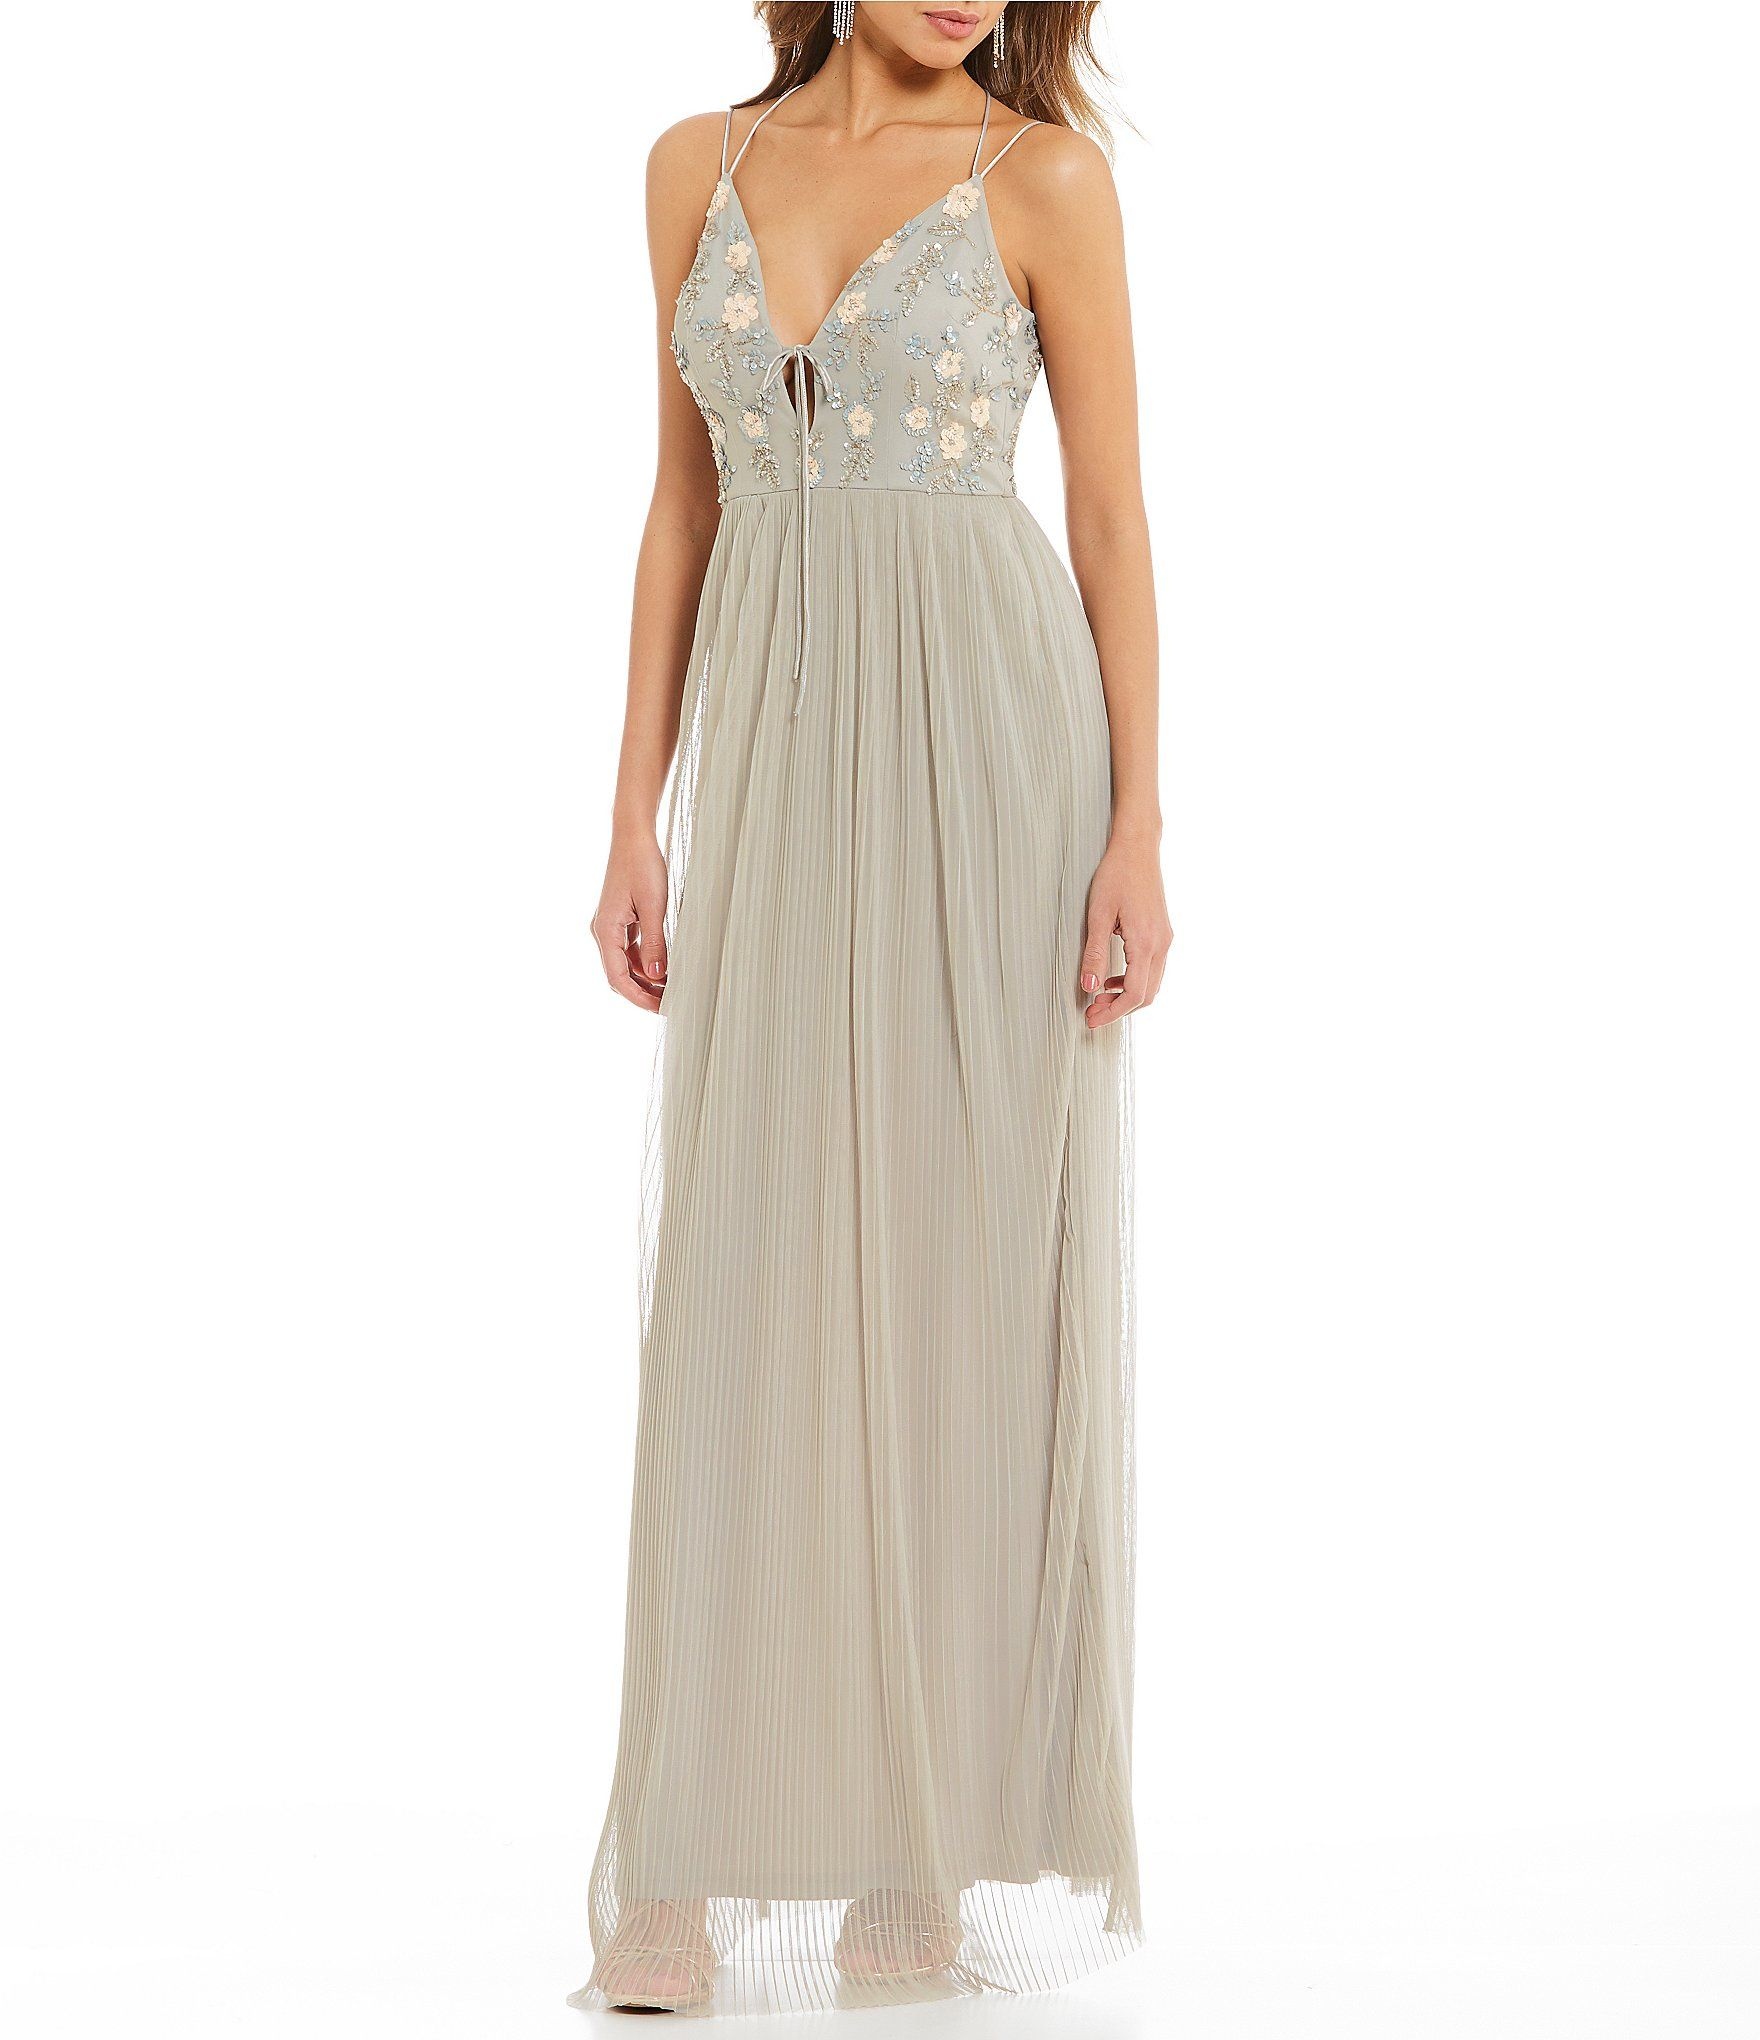 Gianni Bini Cara Pleated Gown Dillards Gowns Guest Attire Bridal Gowns